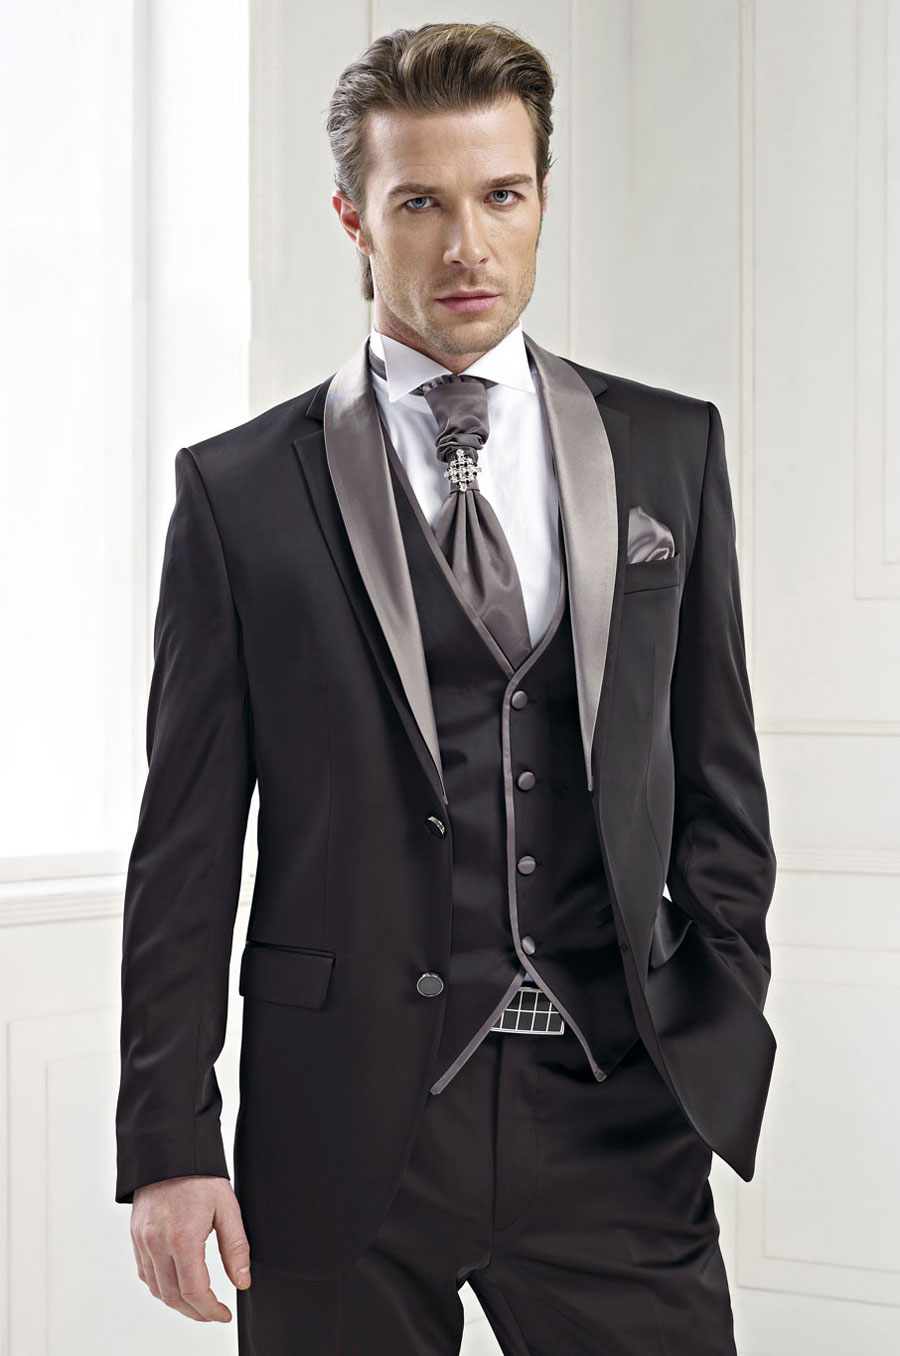 94aed7ed4b5 Mens Wedding Suit Styles